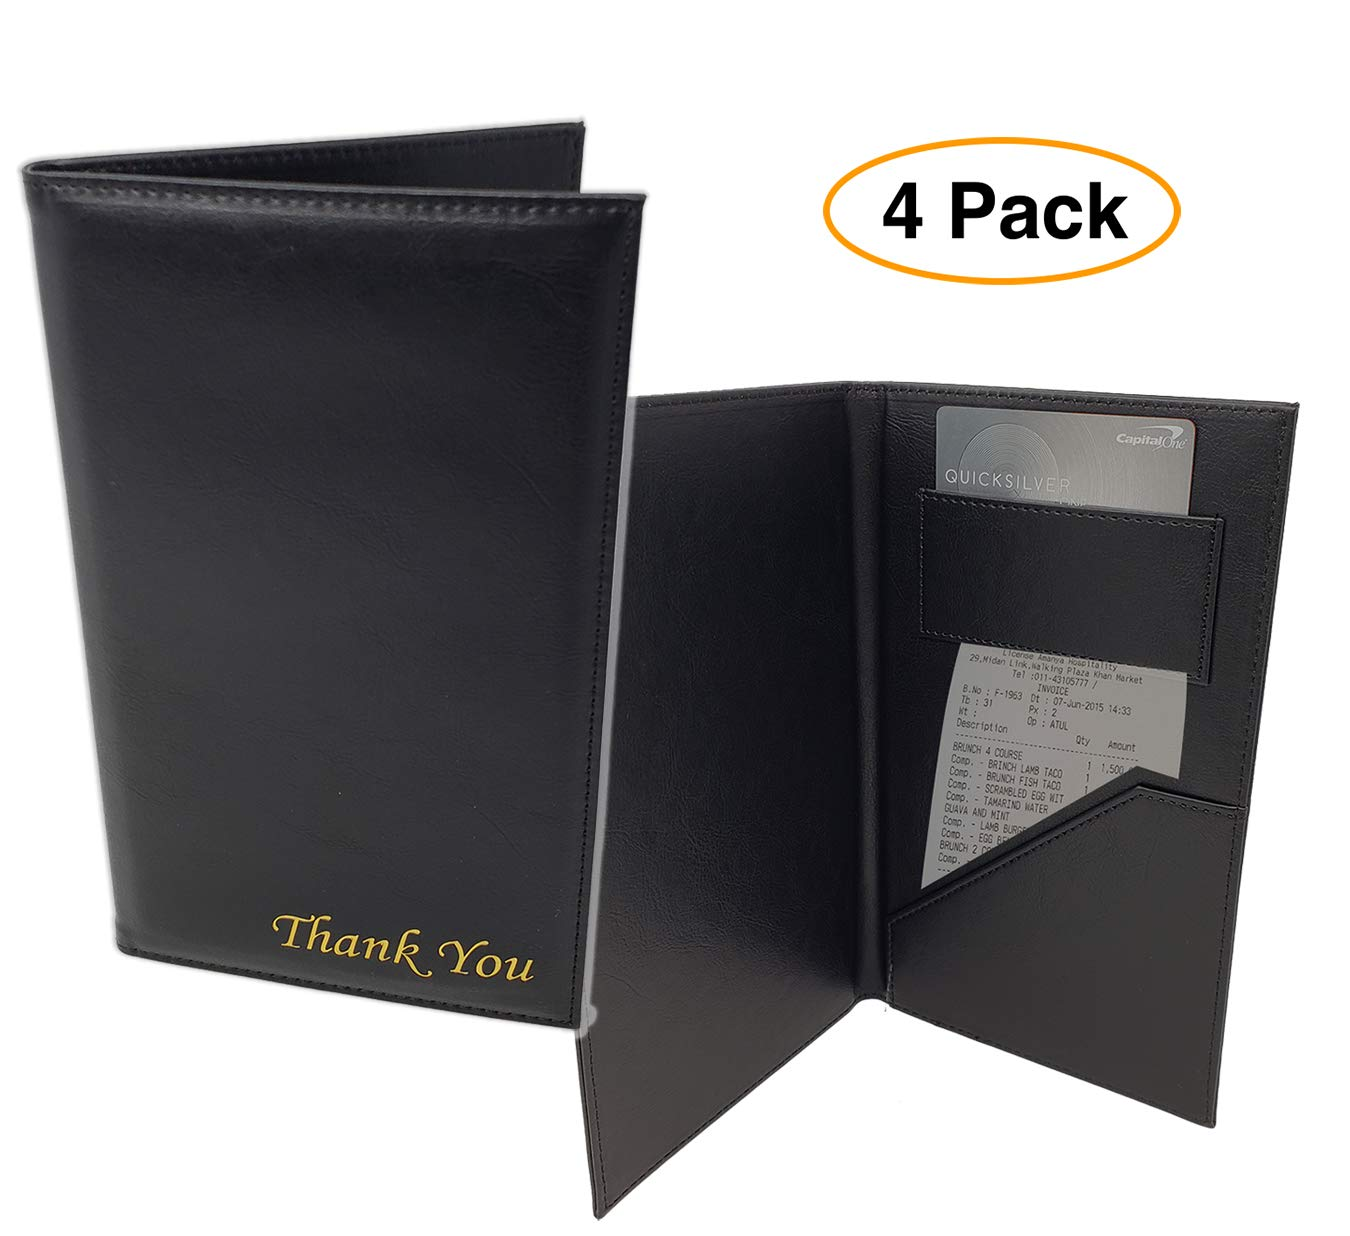 Restaurant Check/Bill Card Holder - Receipt Pocket, Padded Leather''Thank You'' on Cover (4 Pack)